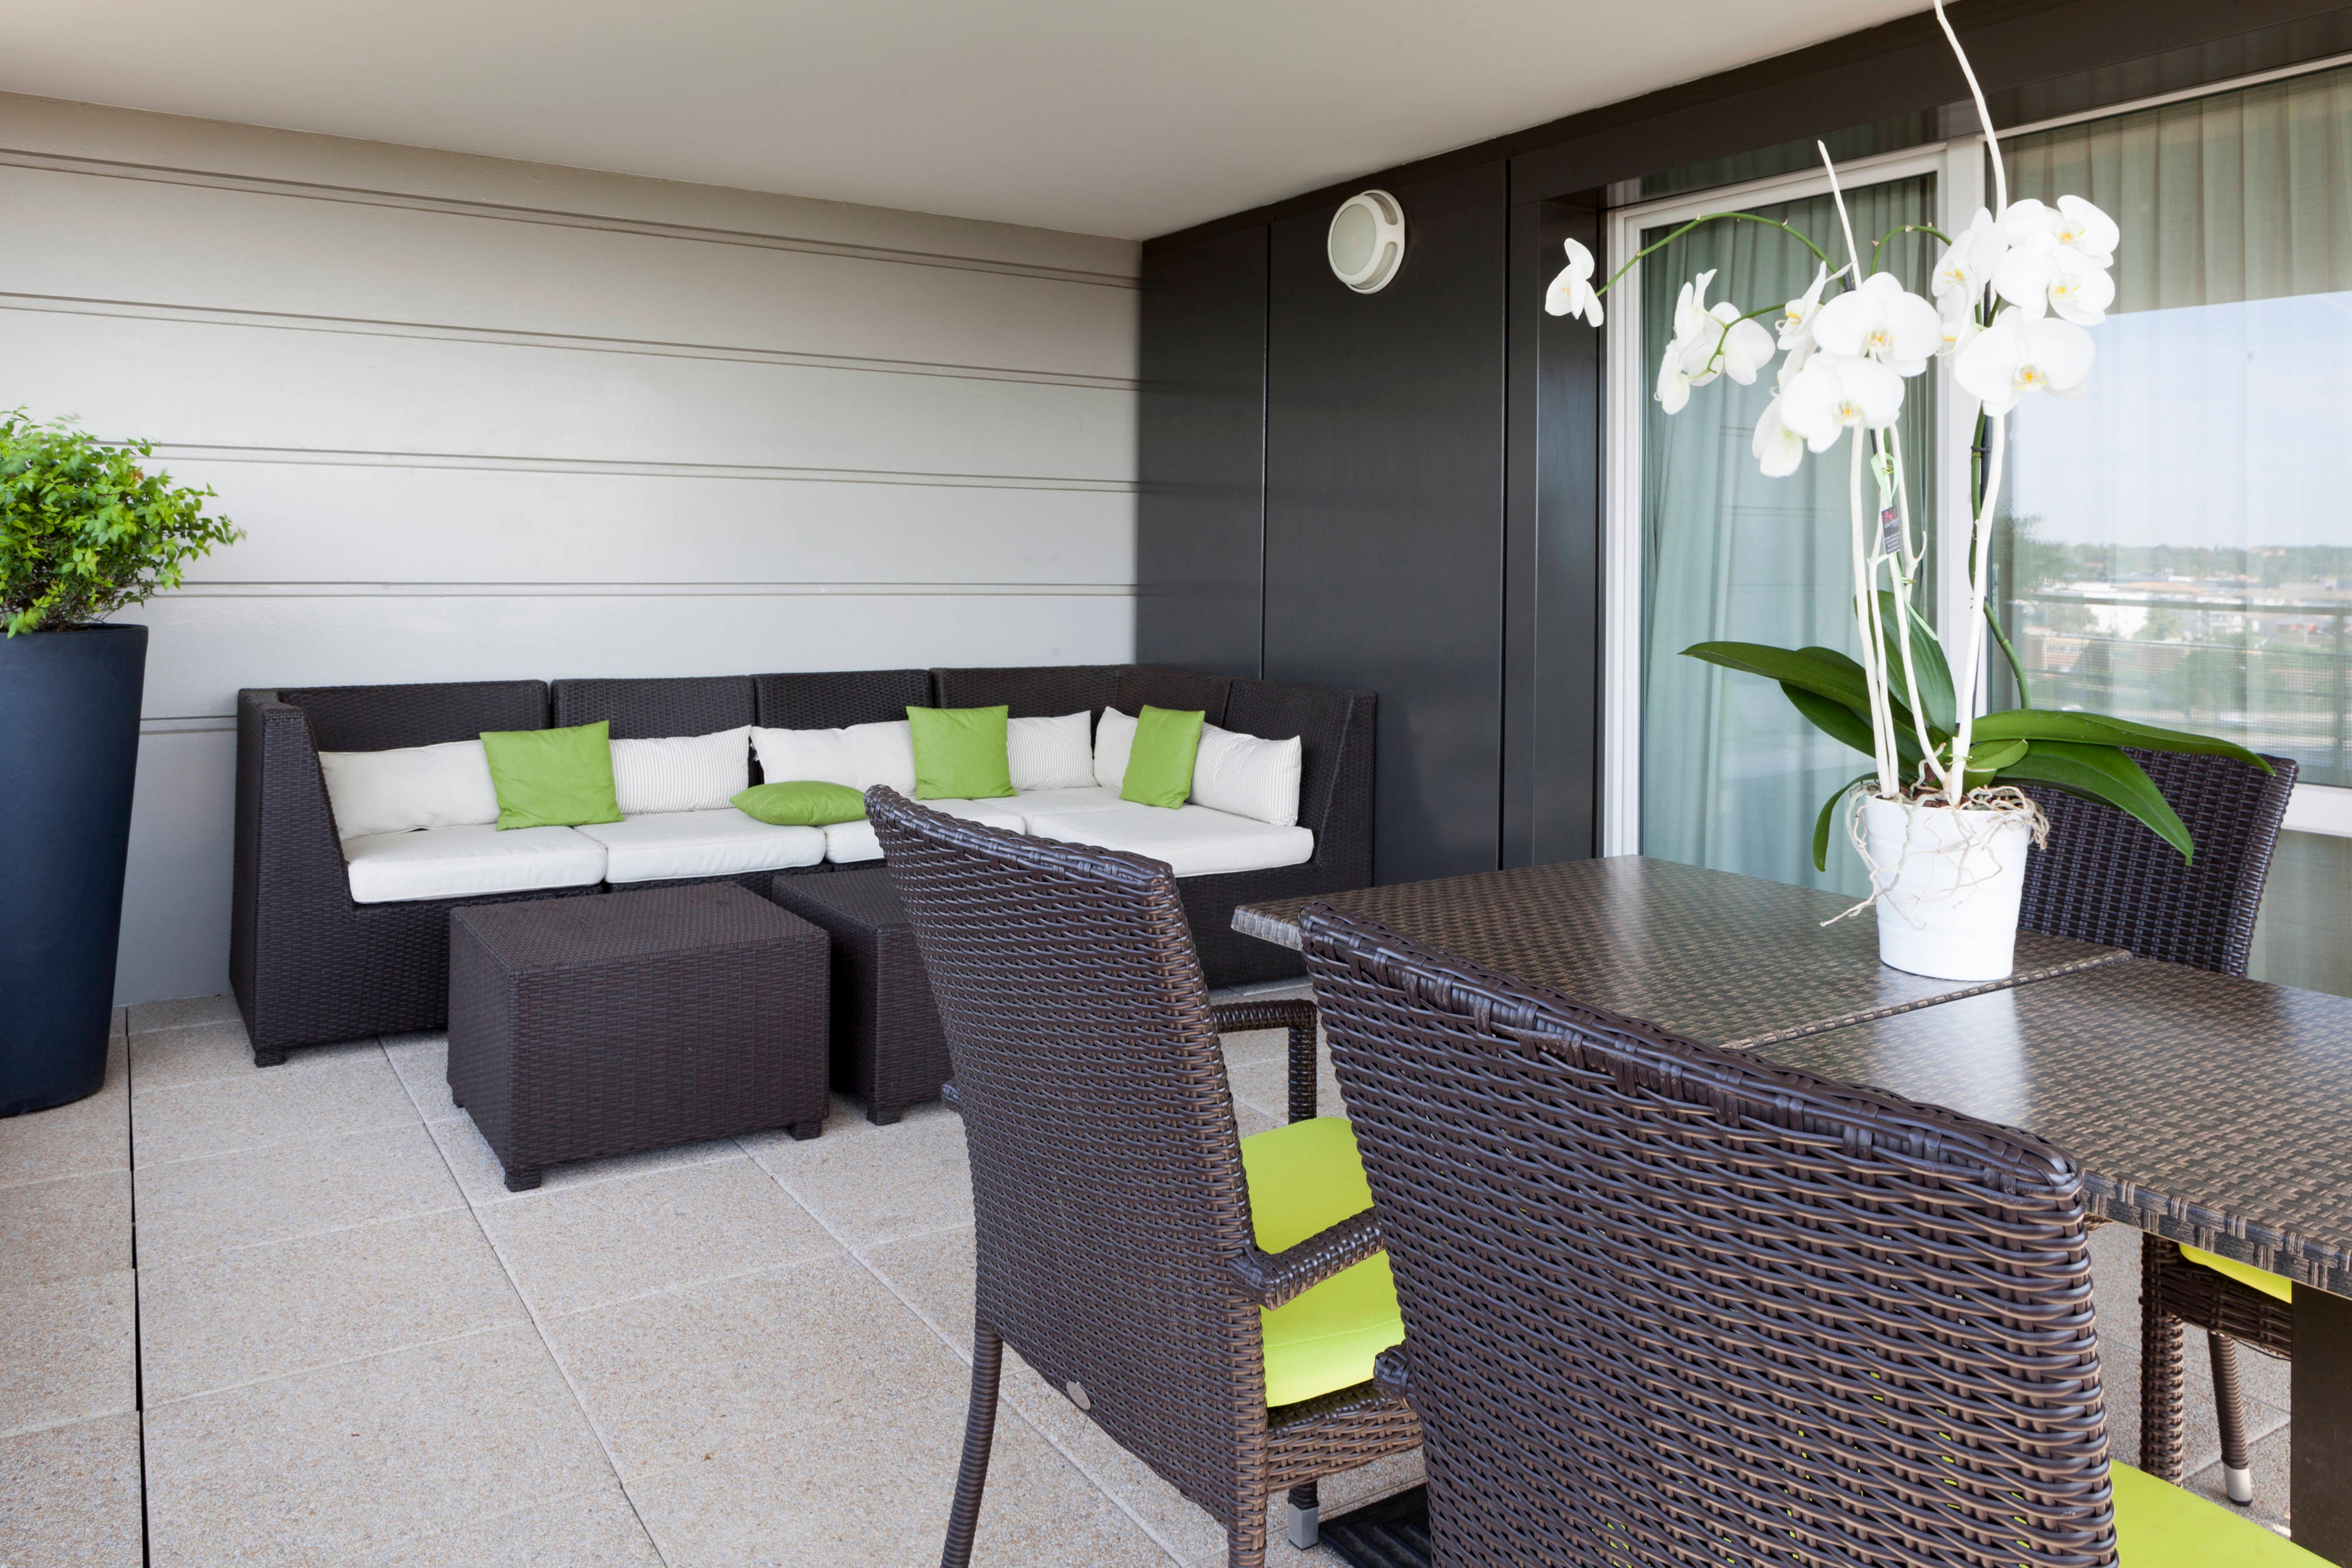 Toulouse Airport hotel suite terrace